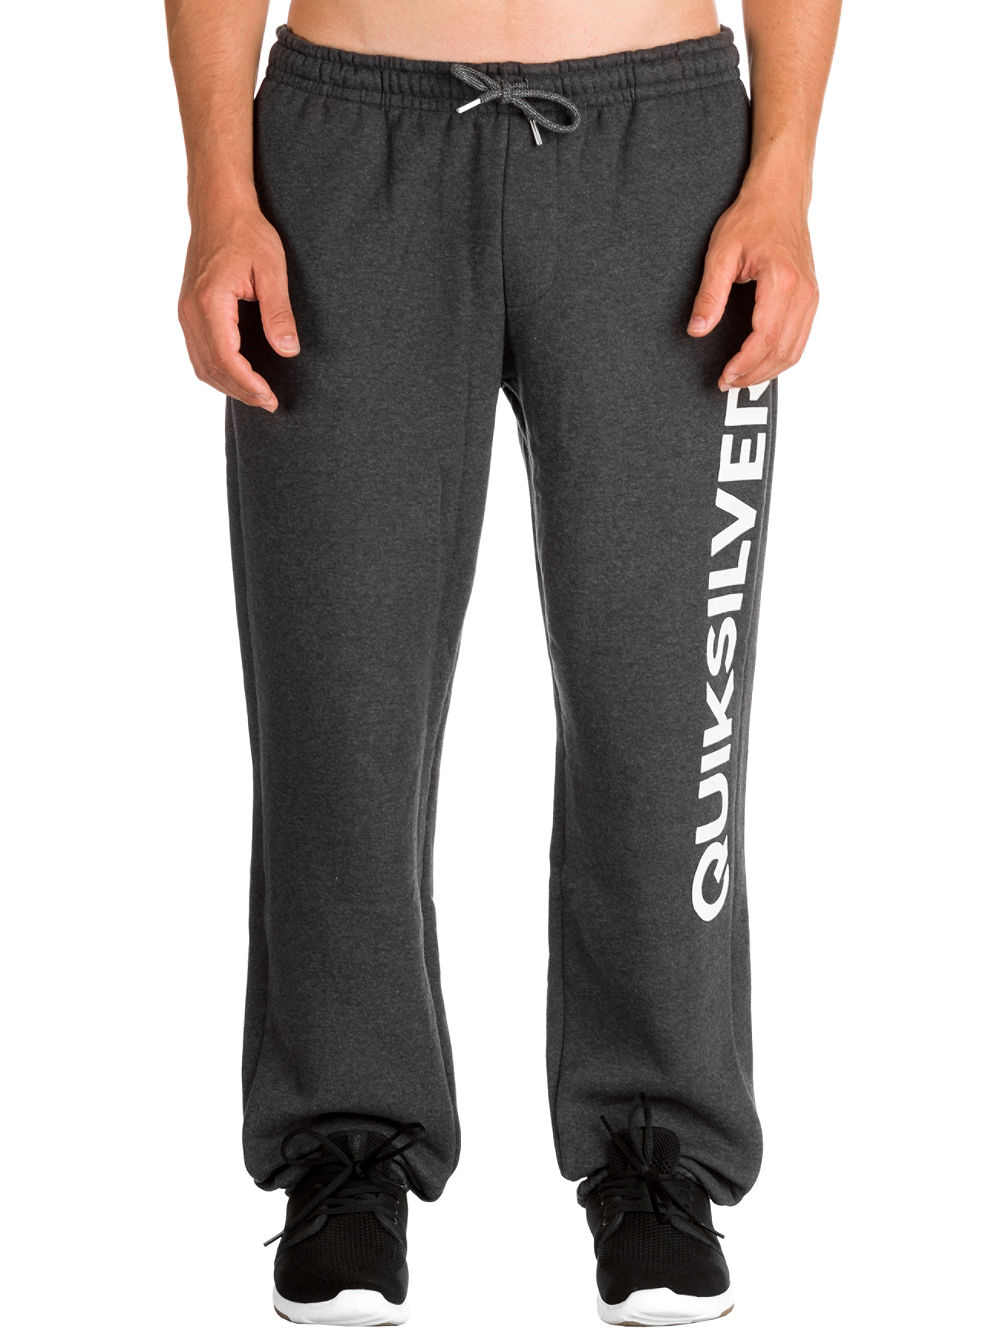 Screen Jogging Pants